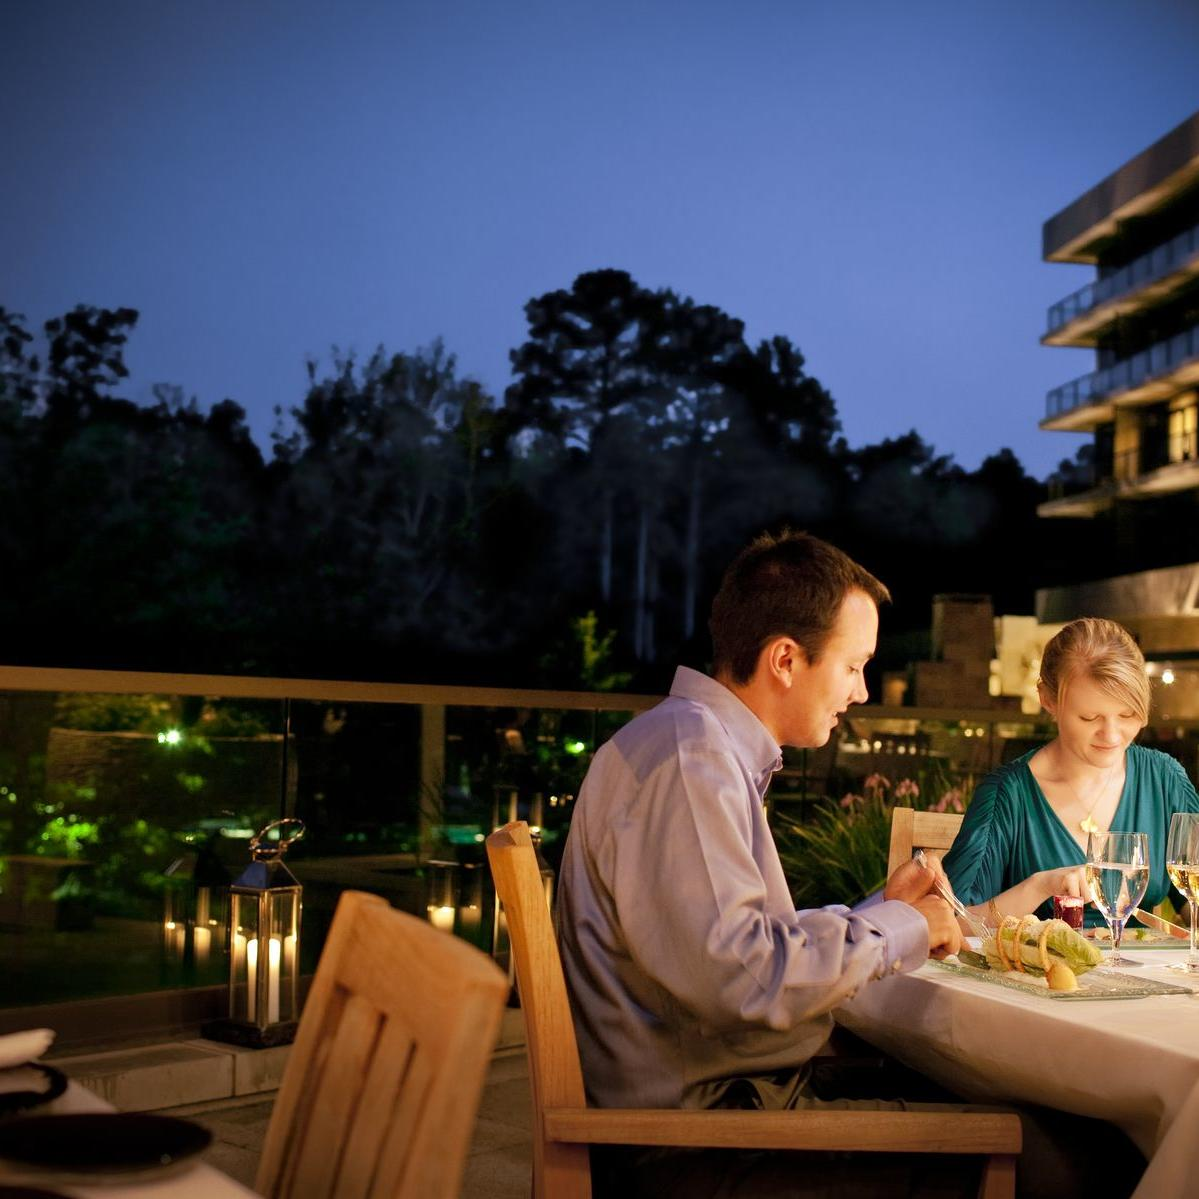 couple eating dinner outside with wine glasses